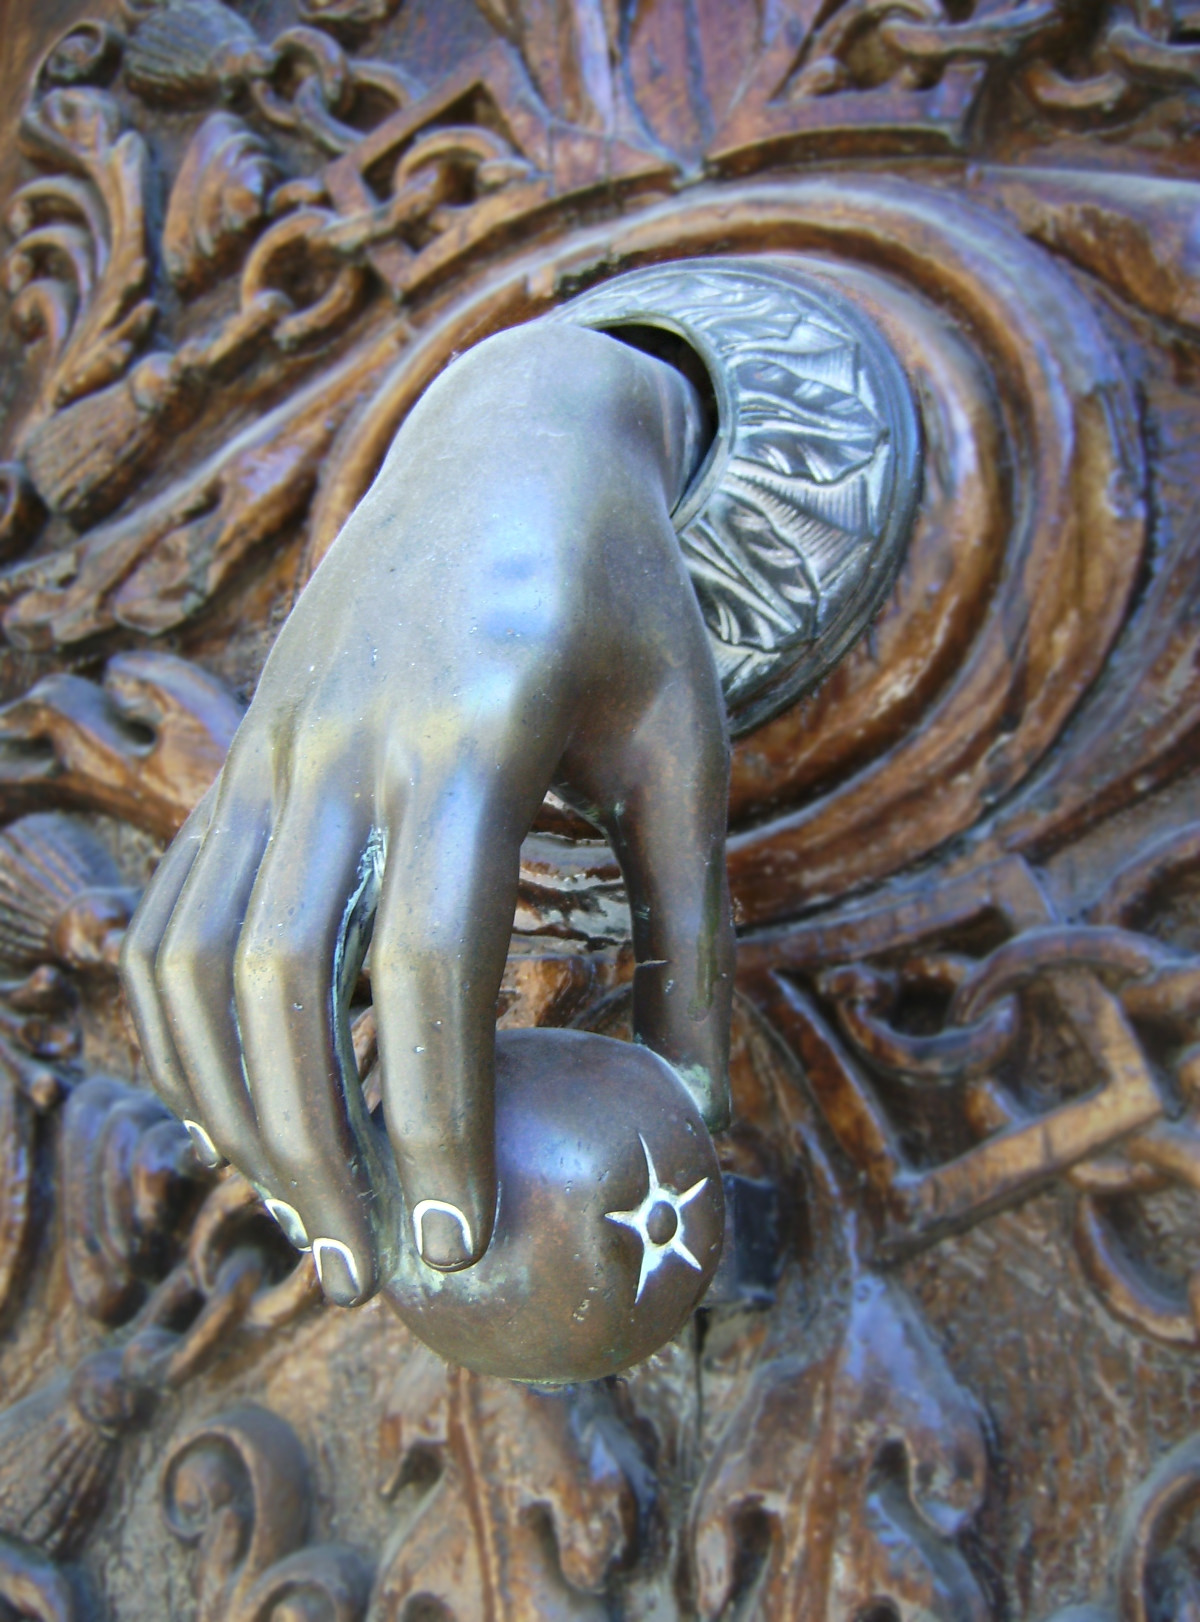 Hand door knocker, Trujillo, Spain. Credit Julius Eugen